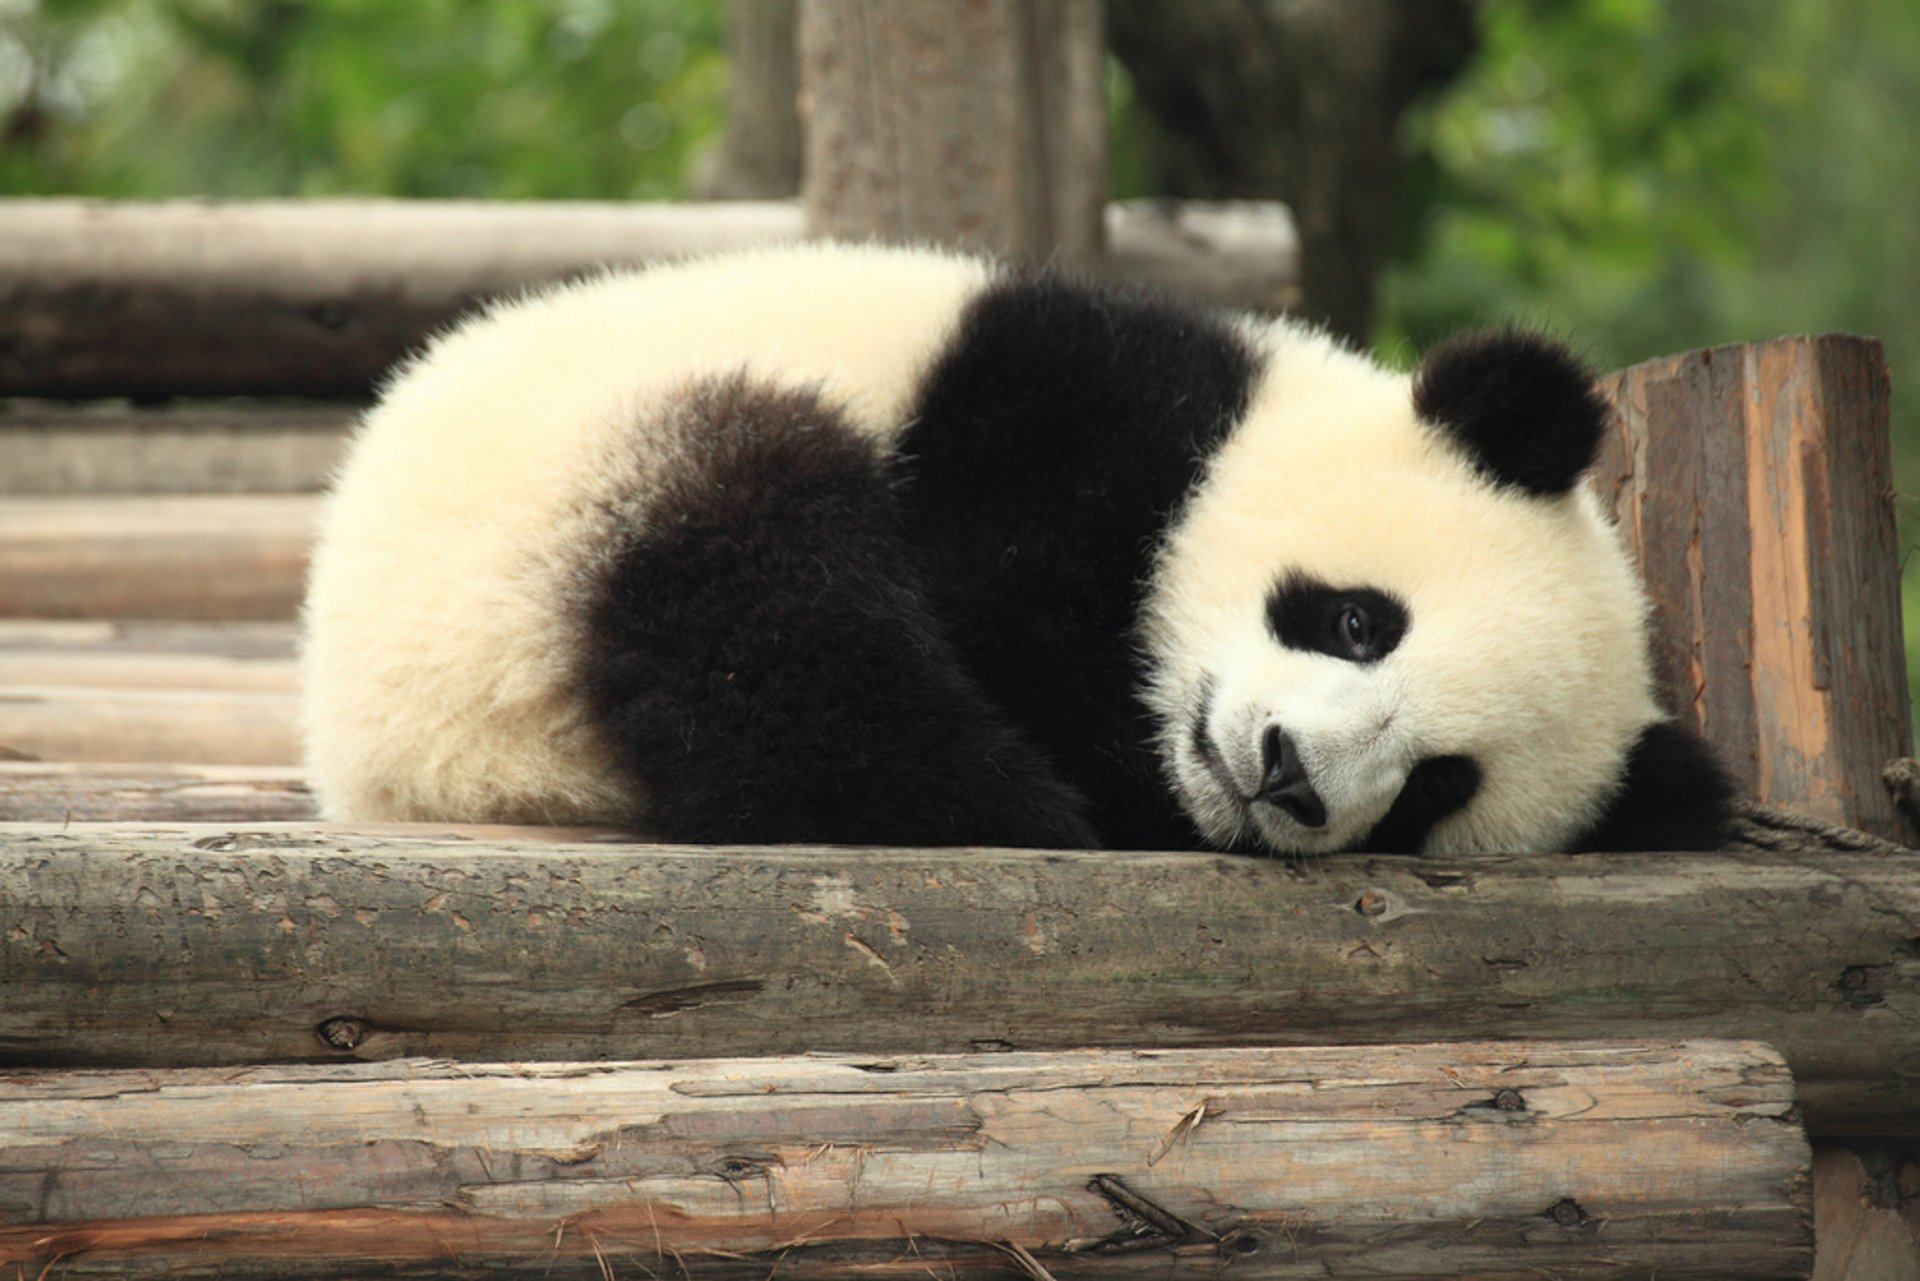 Giant Pandas in China 2020 - Best Time